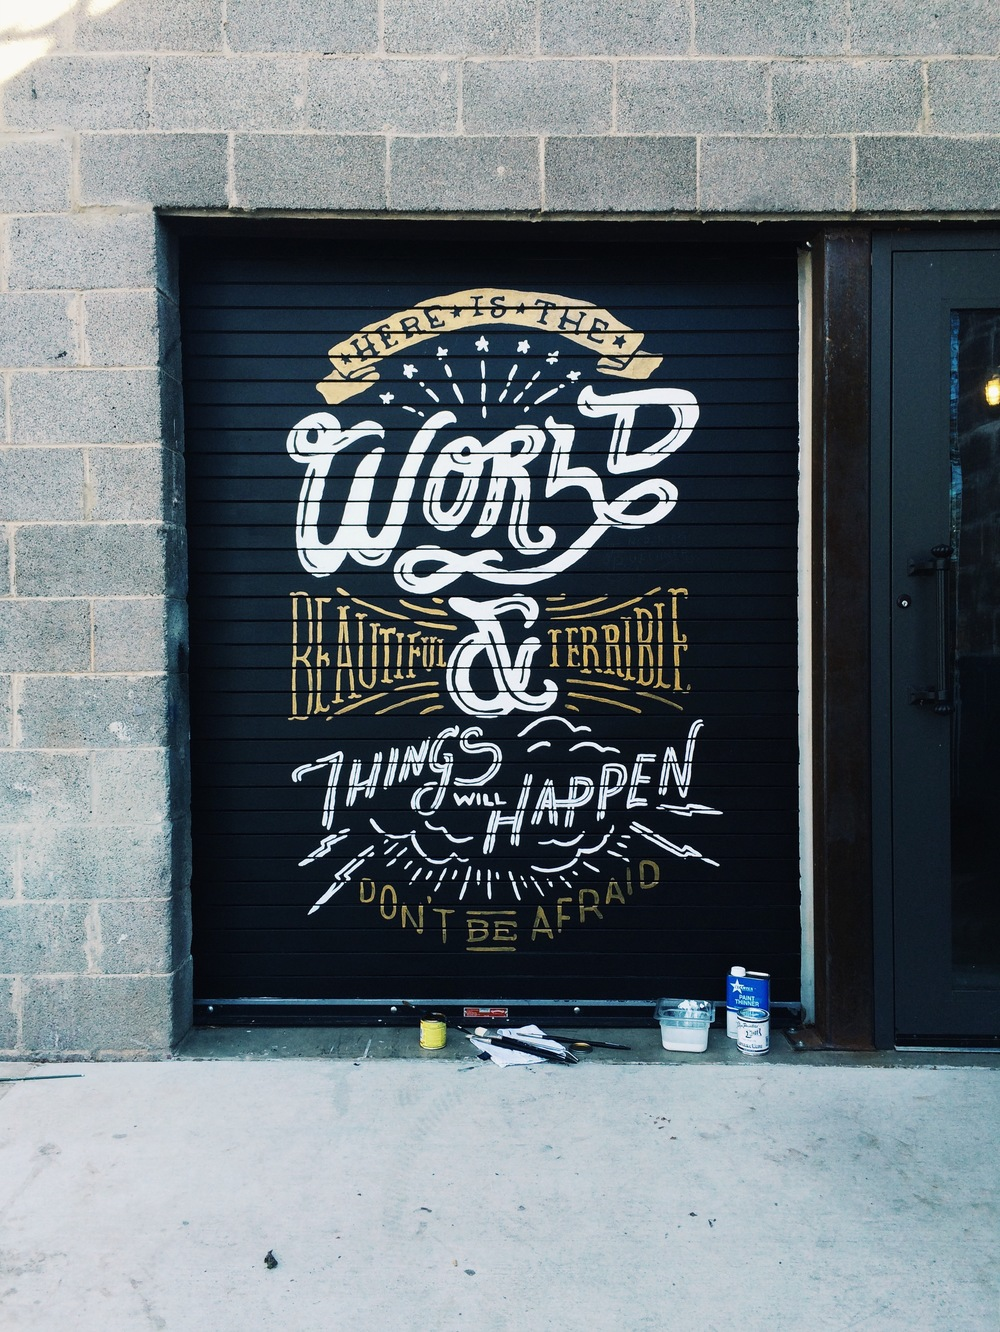 Here is the World for Oak Cliff Coffee by Kyle Steed